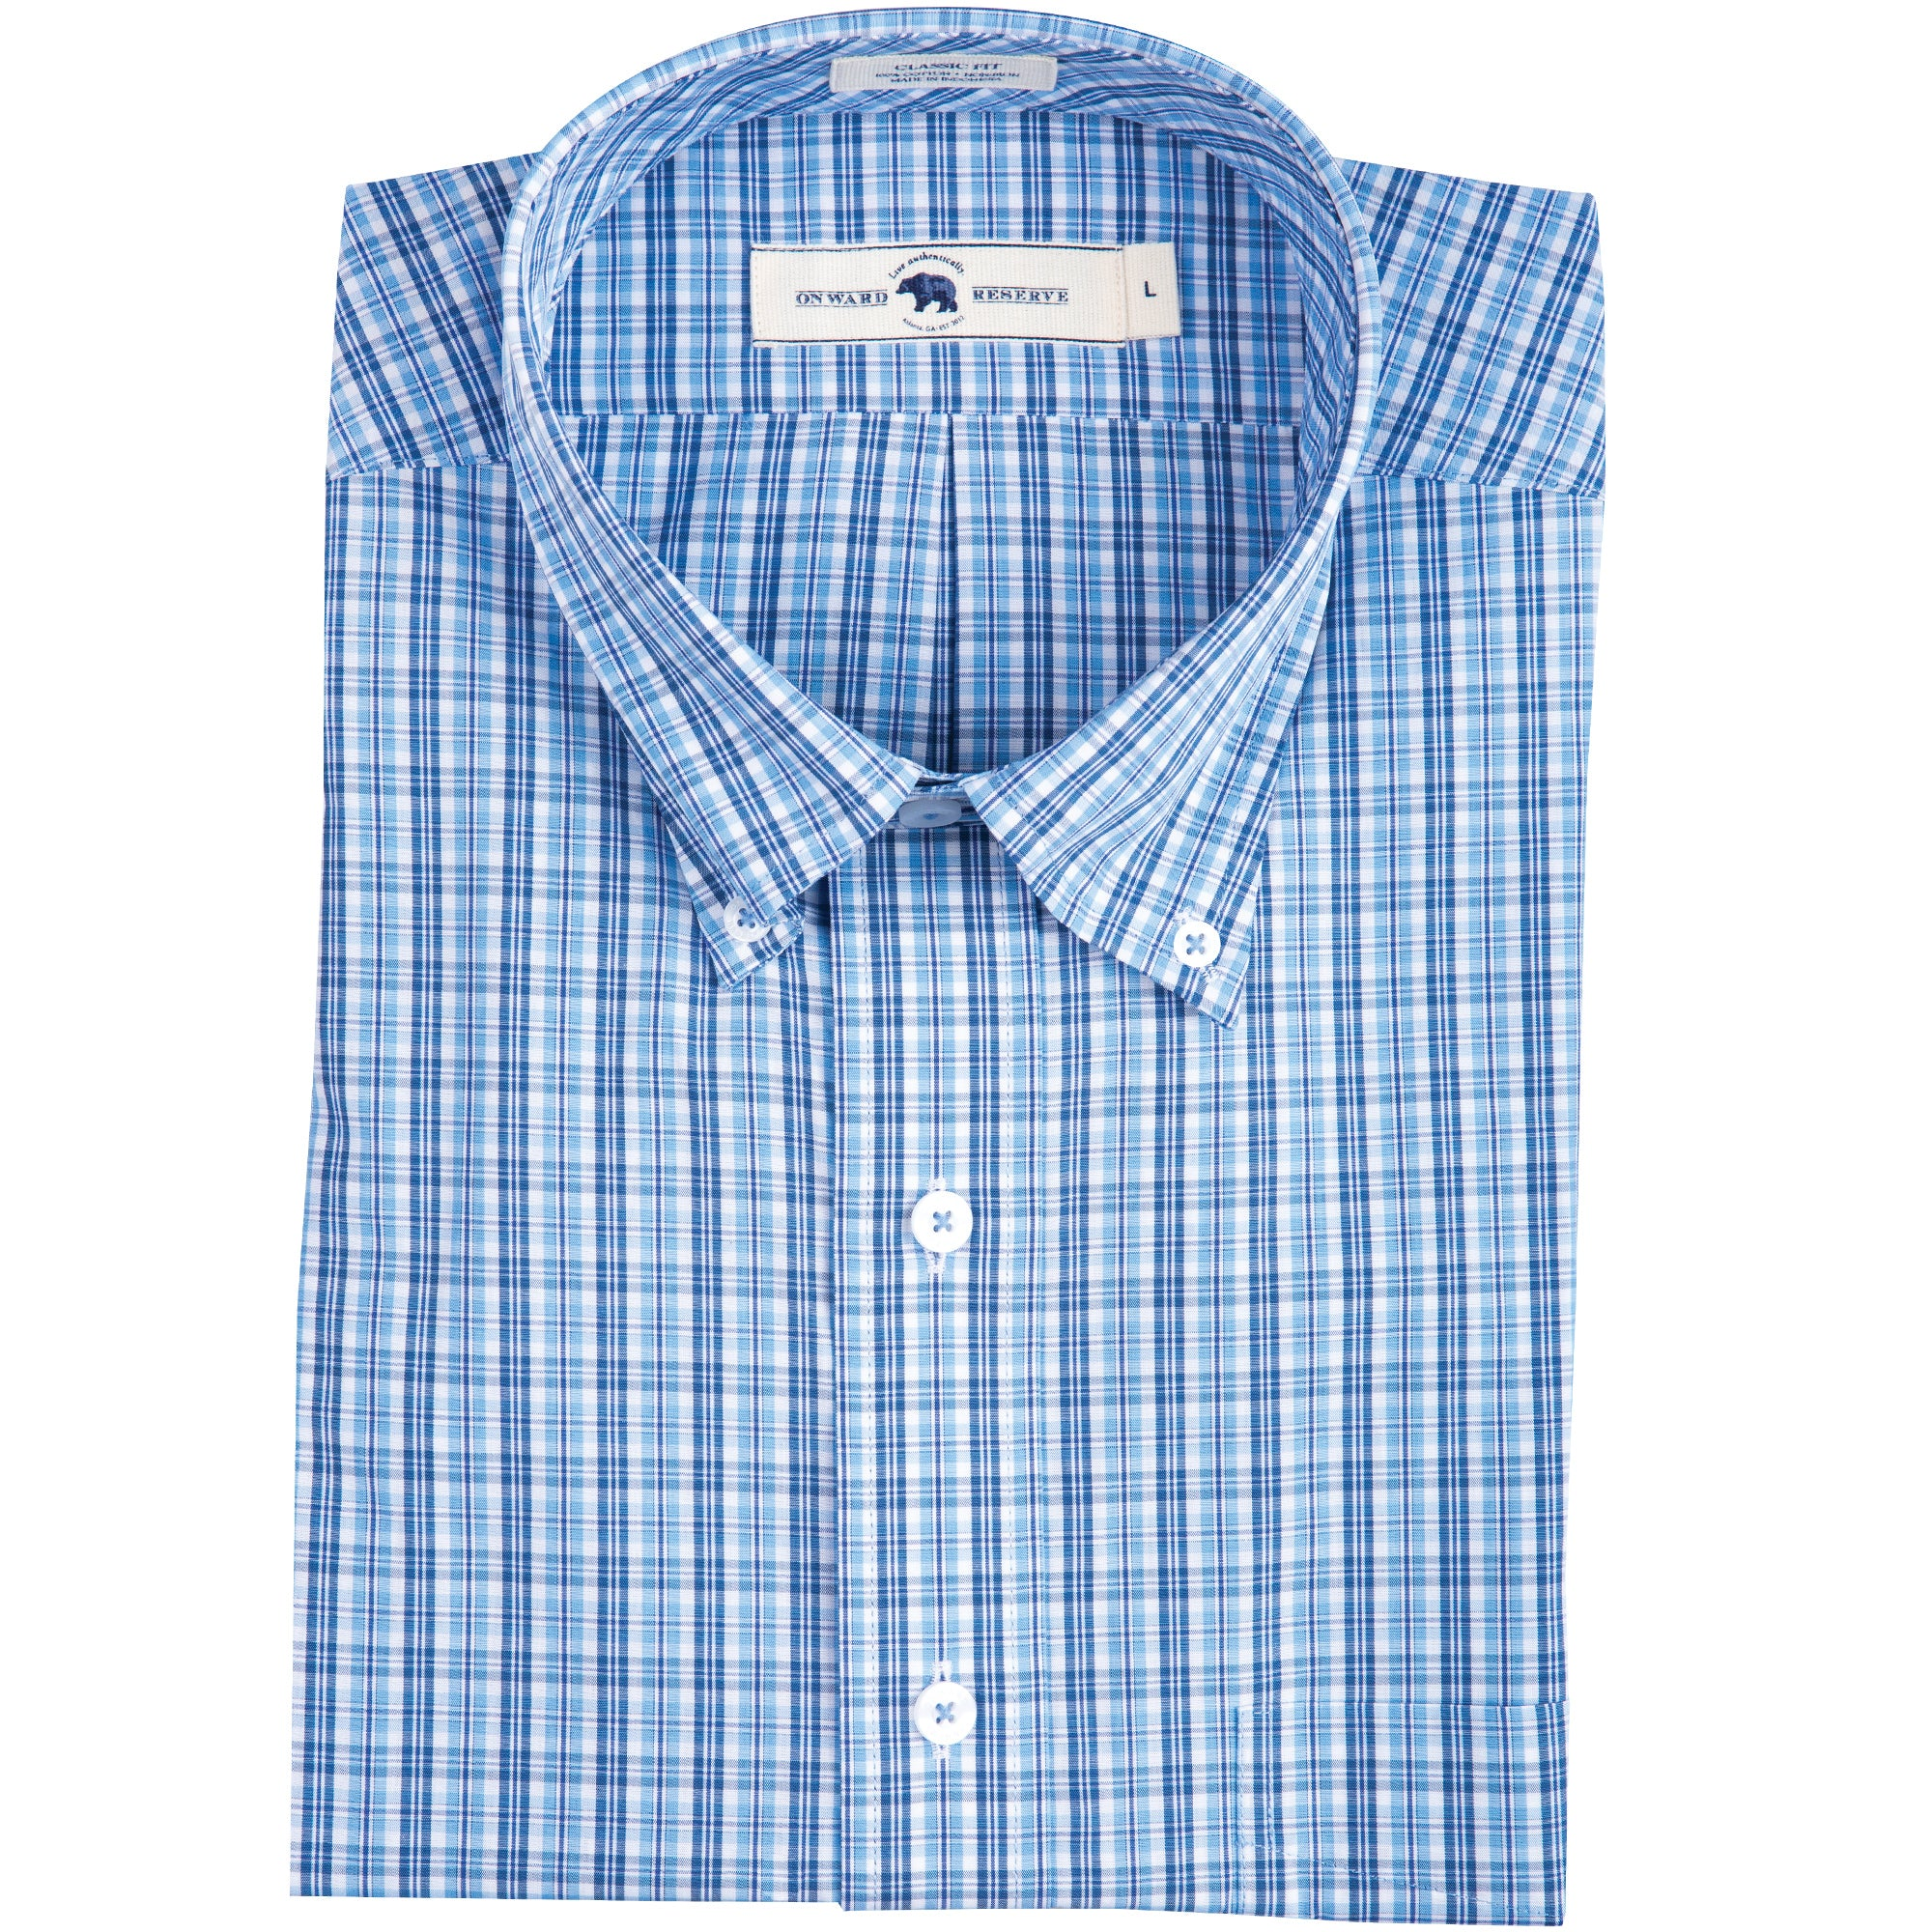 Georgian Classic Fit Button Down